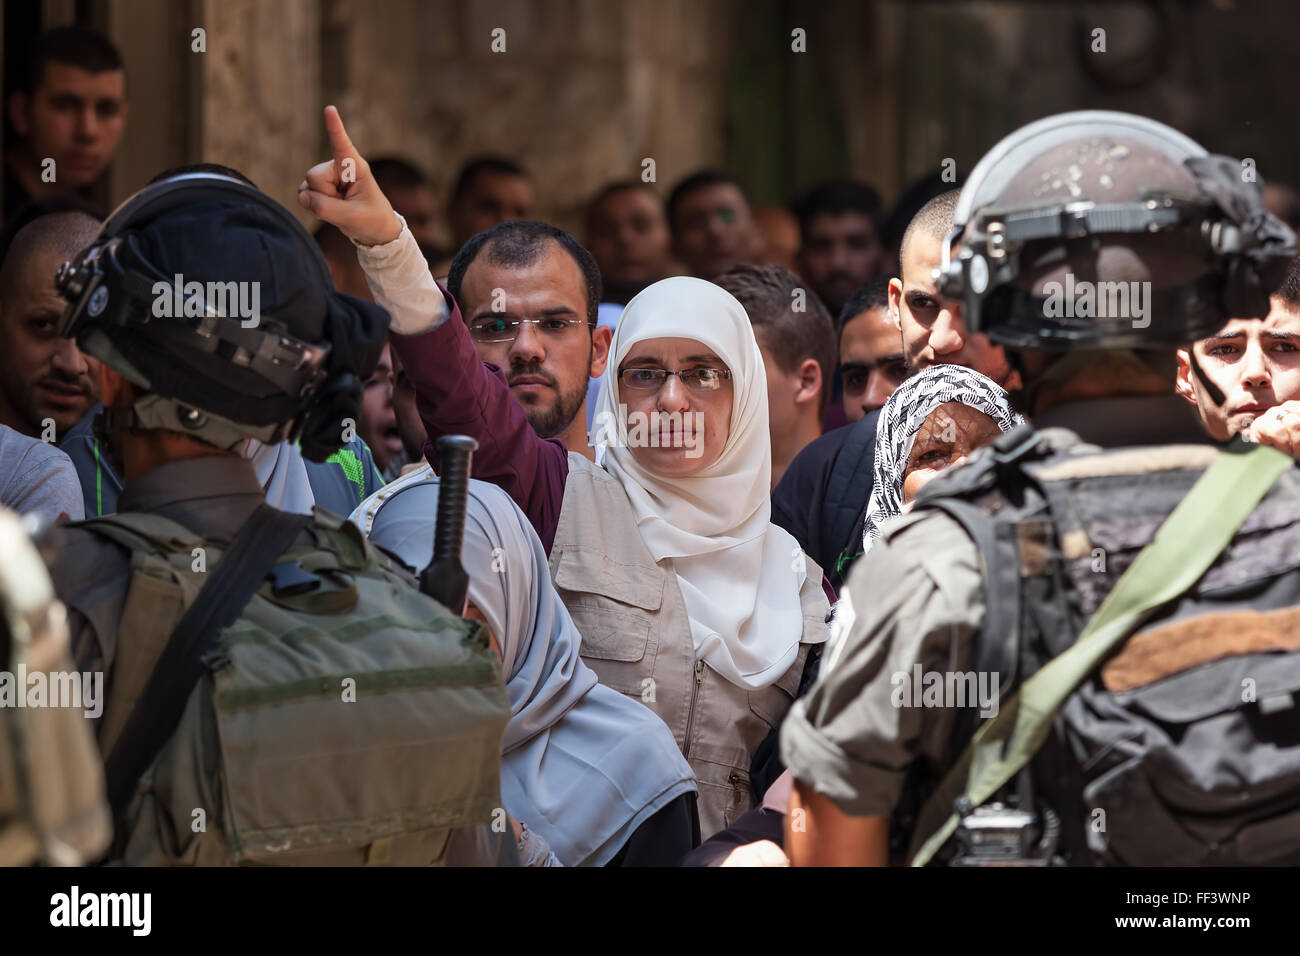 Palestinian protest in Old City of Jerusalem, Israel. - Stock Image